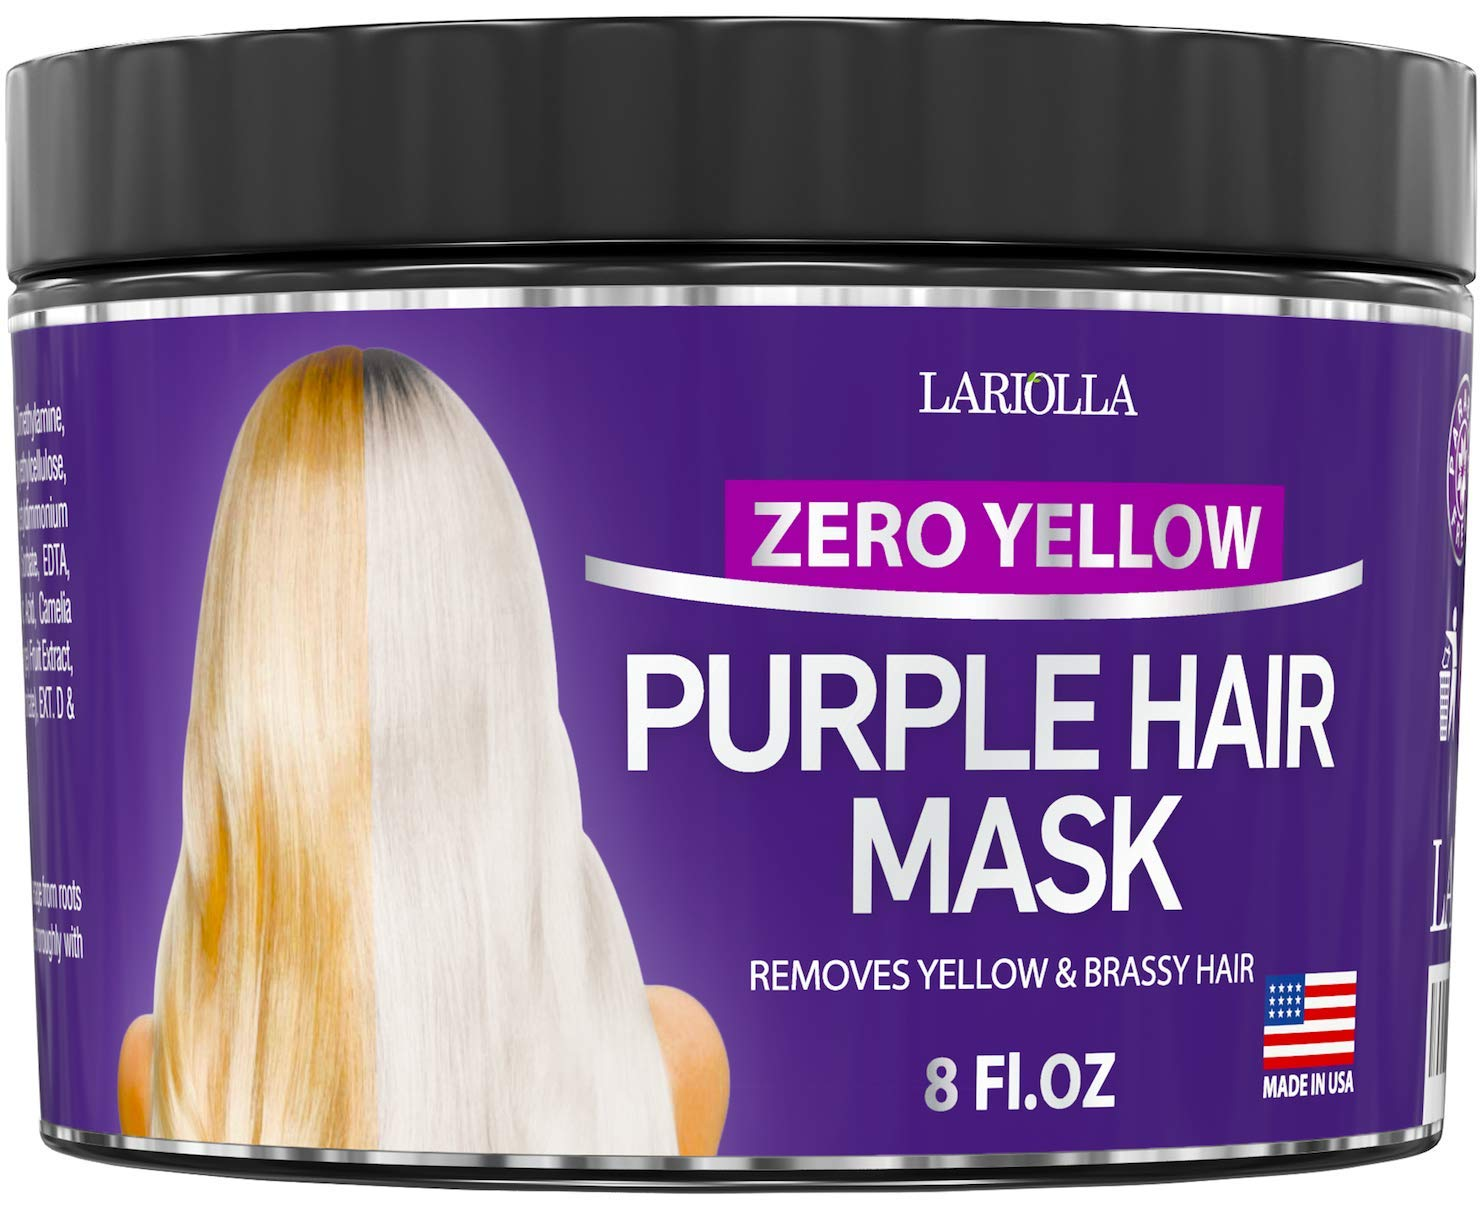 Purple Hair Mask for Blonde - Instantly Eliminate Brassiness & Yellows - Made in USA - Hair Toner with Keratin & Jojoba Oil - Bleached & Highlighted Hair - Sulfate Free - No Yellow Mask - 8oz by Lariolla